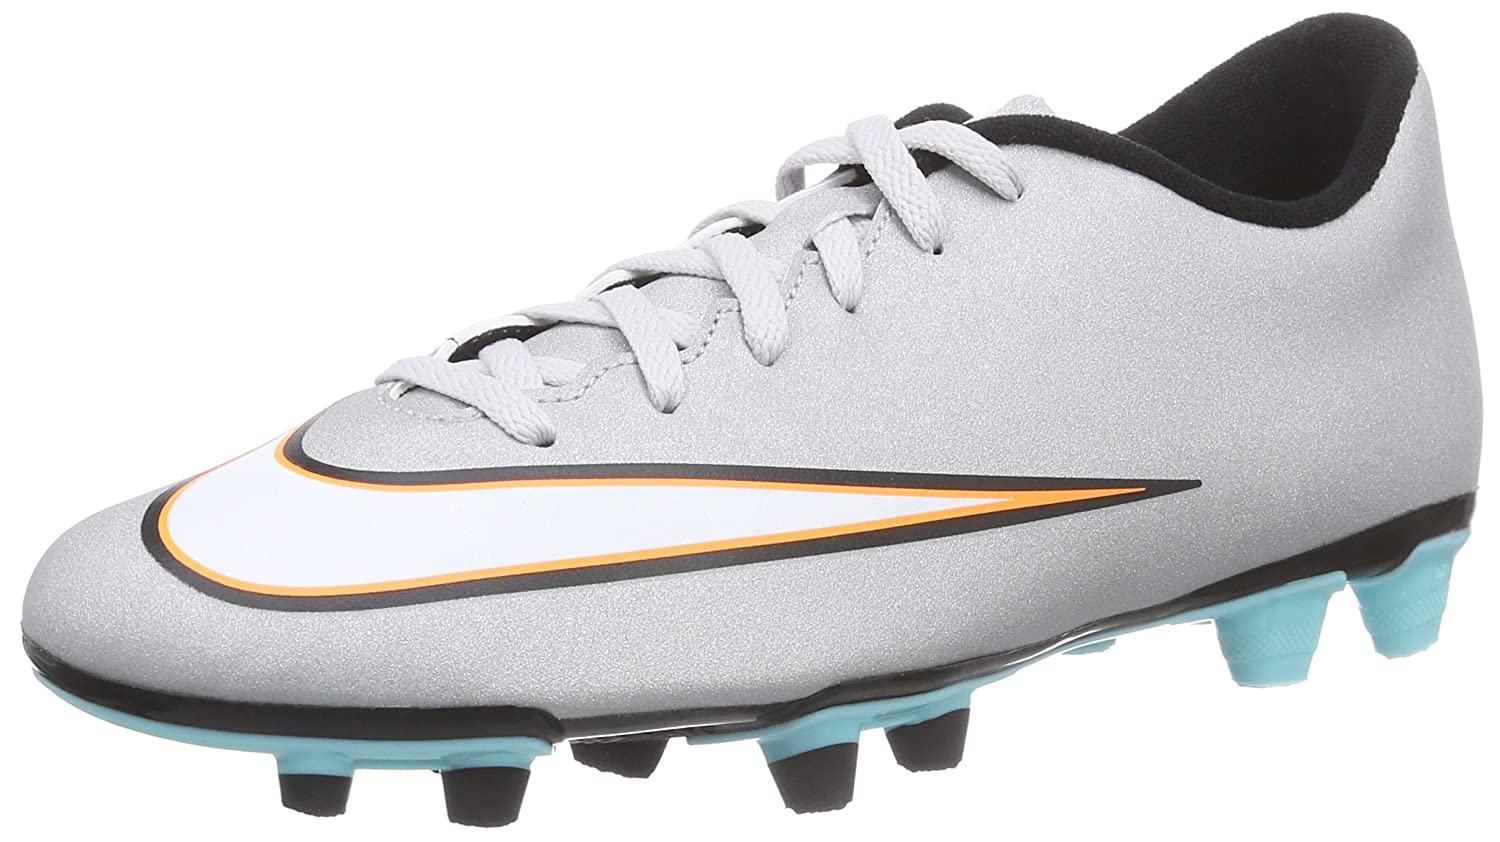 Amazoncom  Nike Mercurial Vortex Ii Cr Fg Mens Football Boots 684843  Soccer Cleats uk 11 us 12 eu 46 metallic silver black hype turquoise blue  003